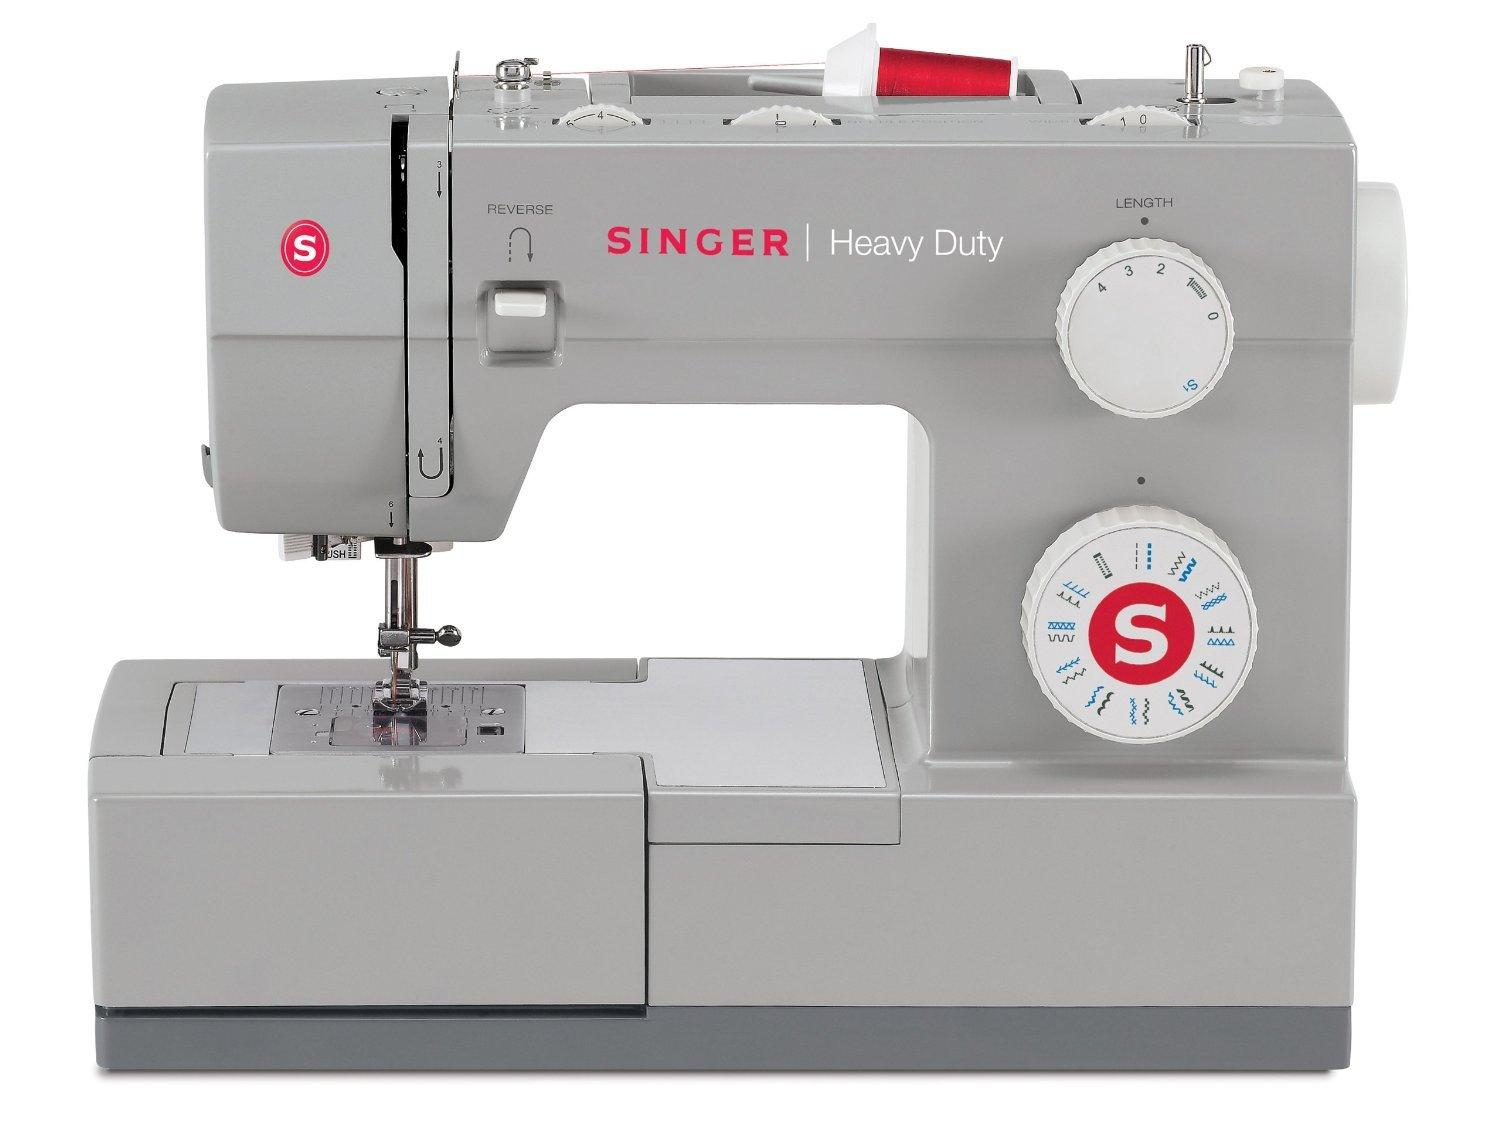 Singer Heavy Duty 4423 compact sewing machine